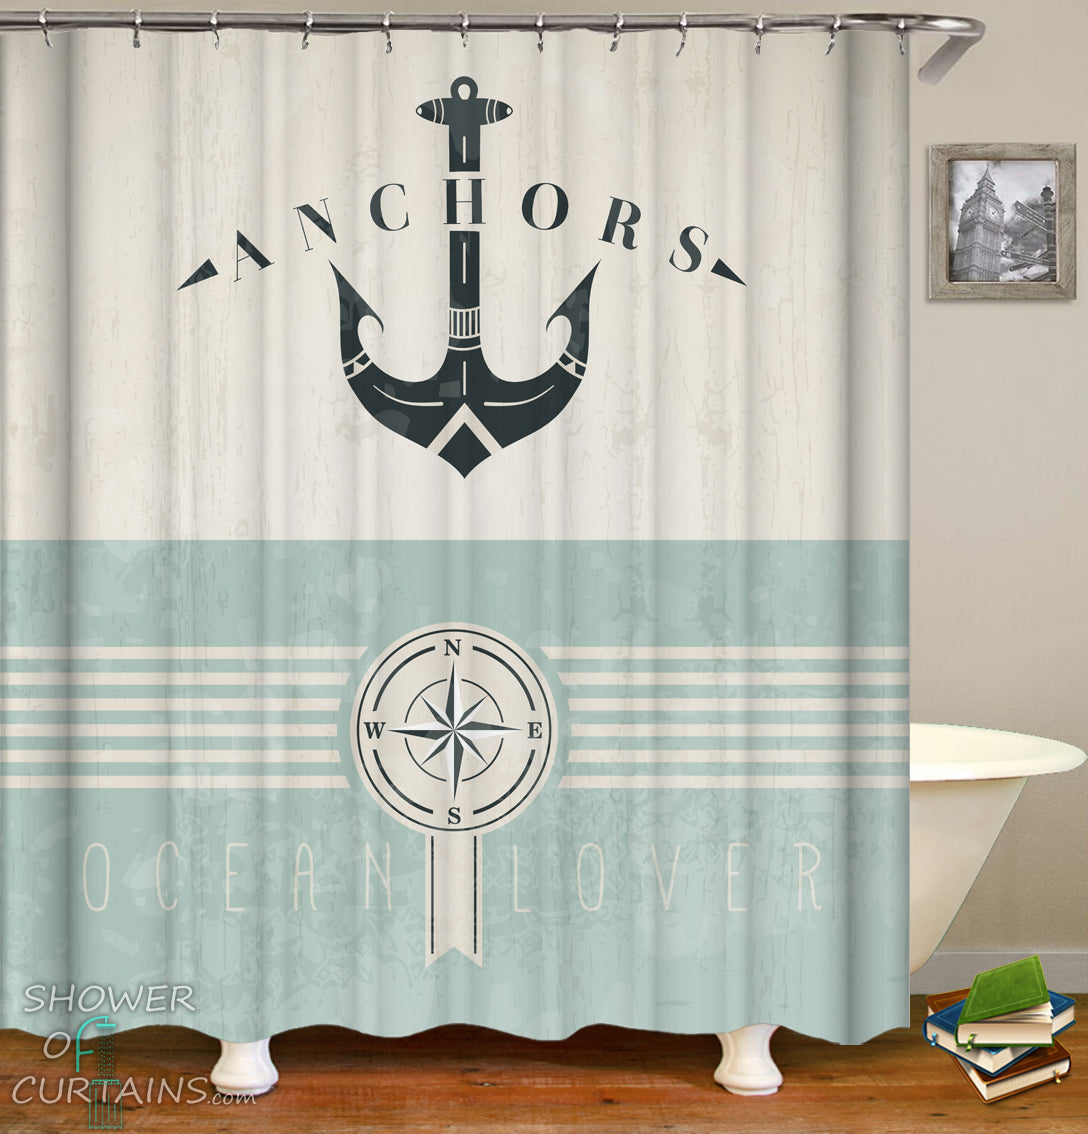 Shower Curtains Ocean Lover Anchor Shower Of Curtains